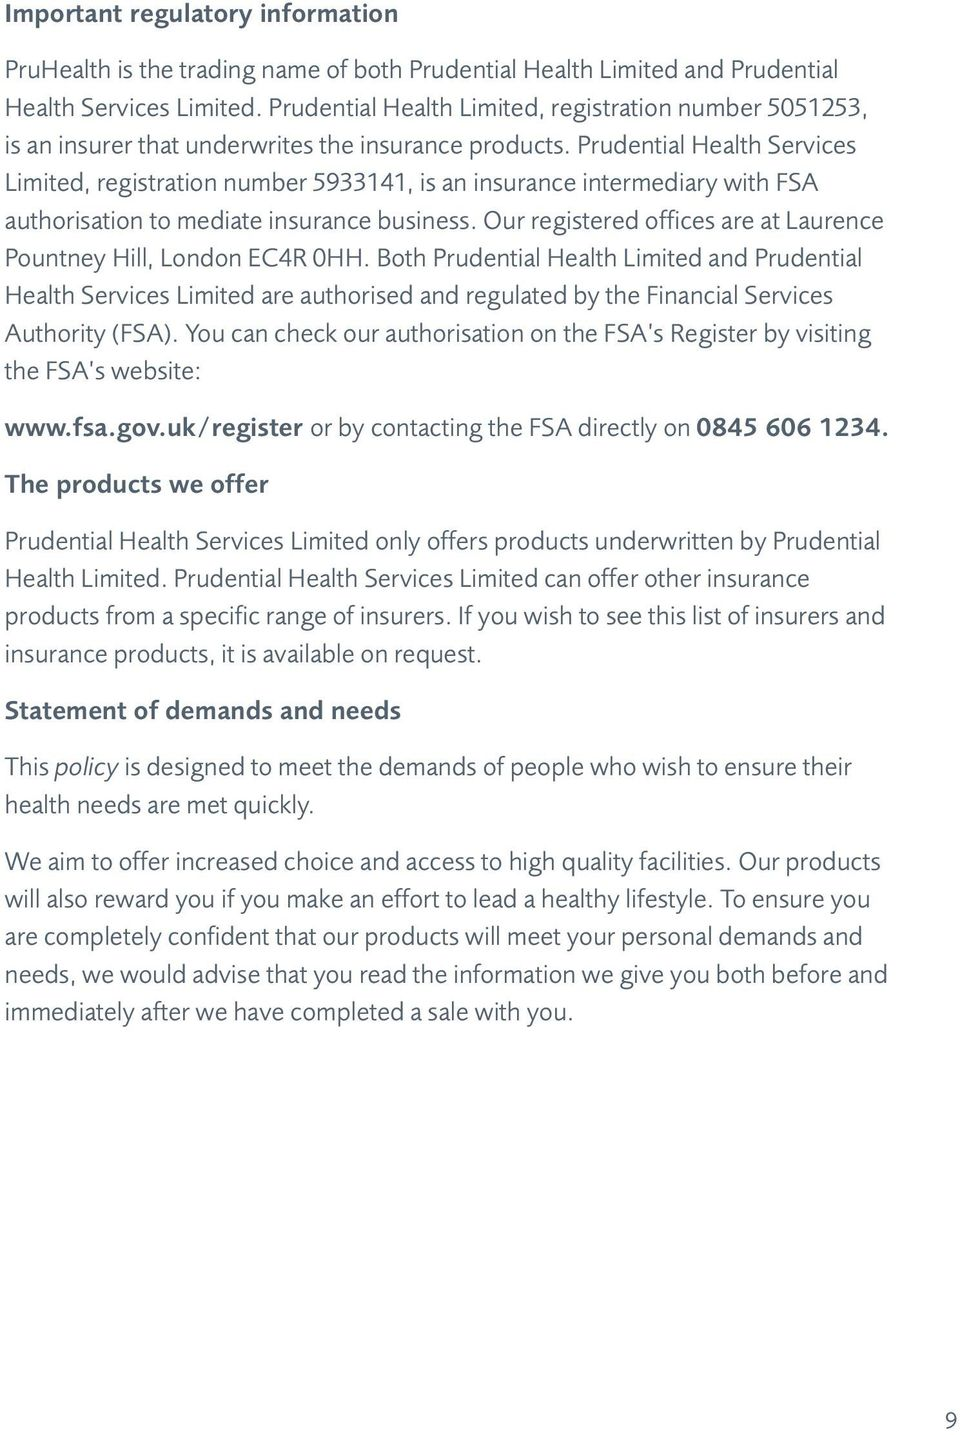 Prudential Health Services Limited, registration number 5933141, is an insurance intermediary with FSA authorisation to mediate insurance business.